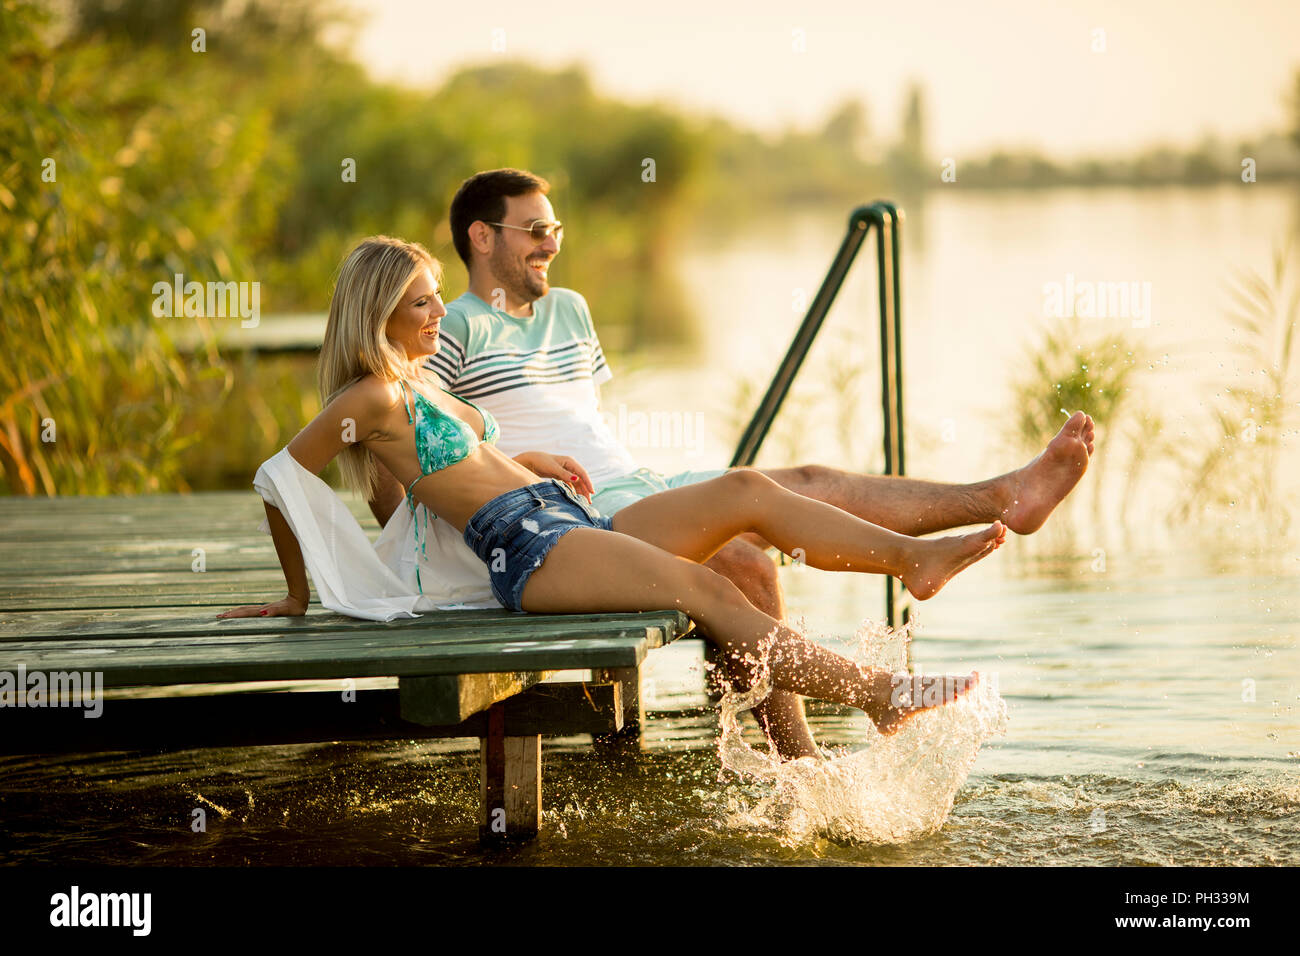 Romantic couple sitting on the wooden pier on the lake at sunny day - Stock Image